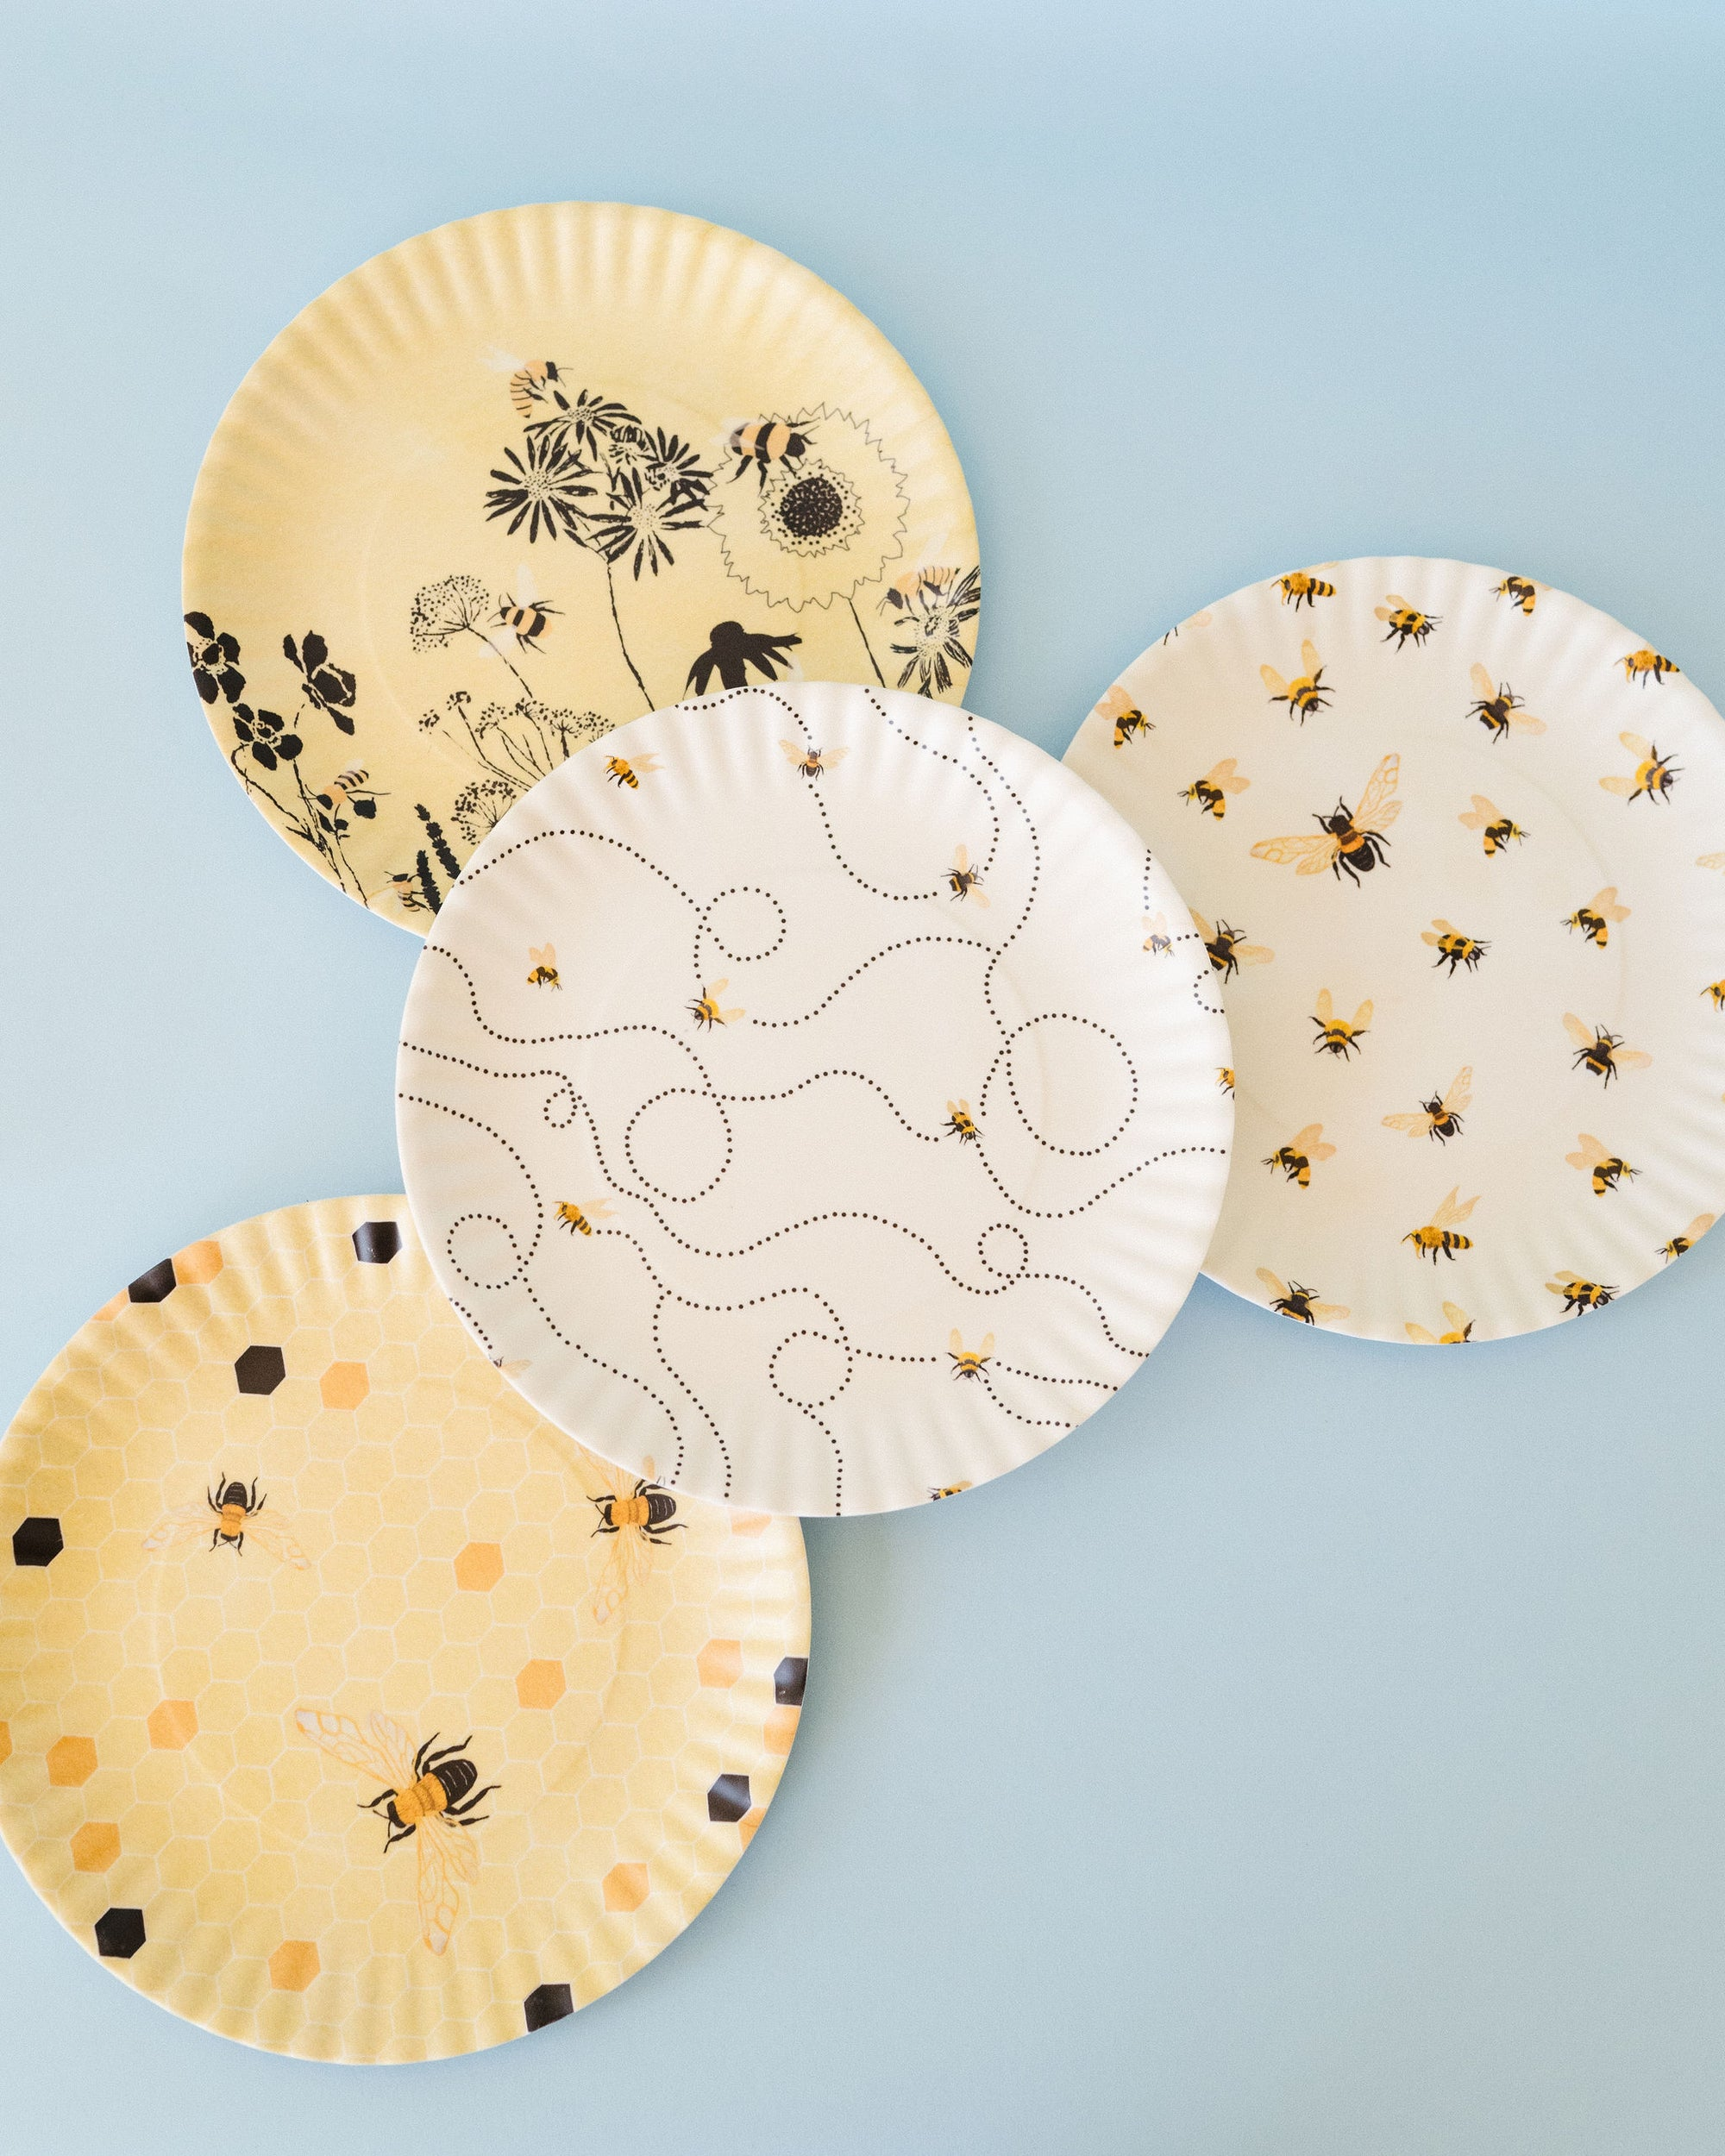 Busy Bee Melamine Plates - Set of 4